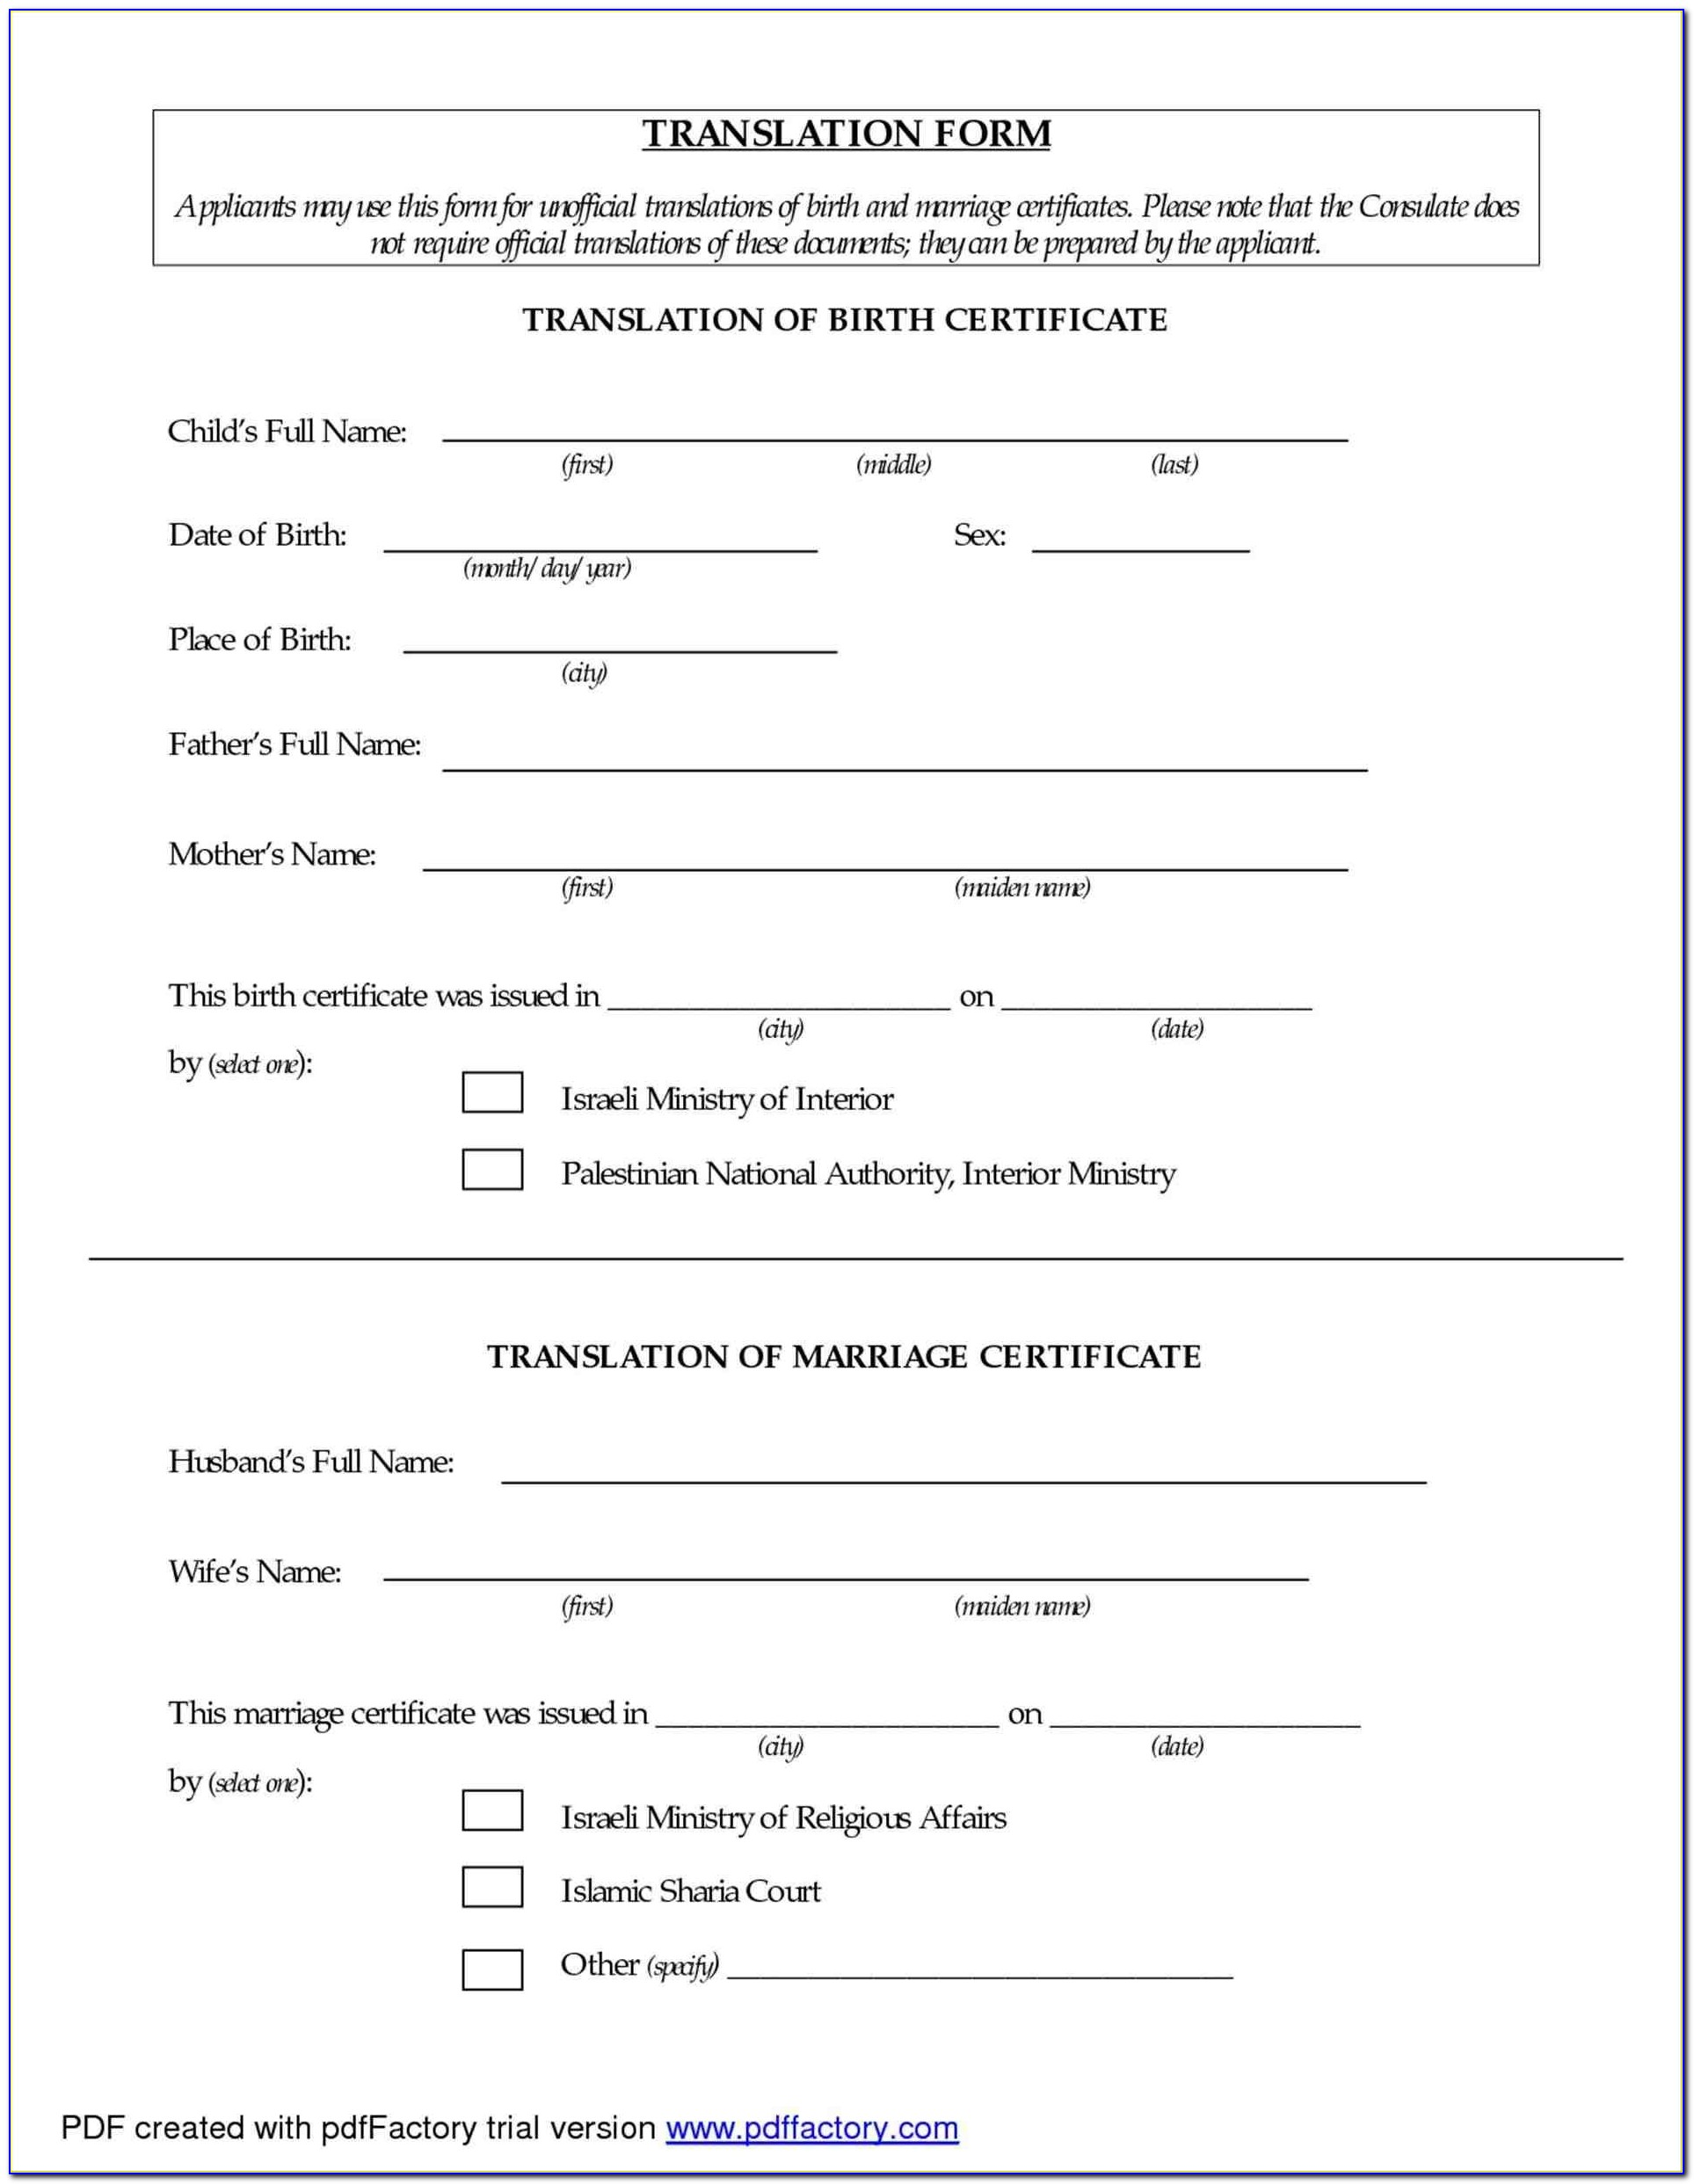 Mexican Birth Certificate Translation Template Best Of Mexican Birth Certificate Translation Template